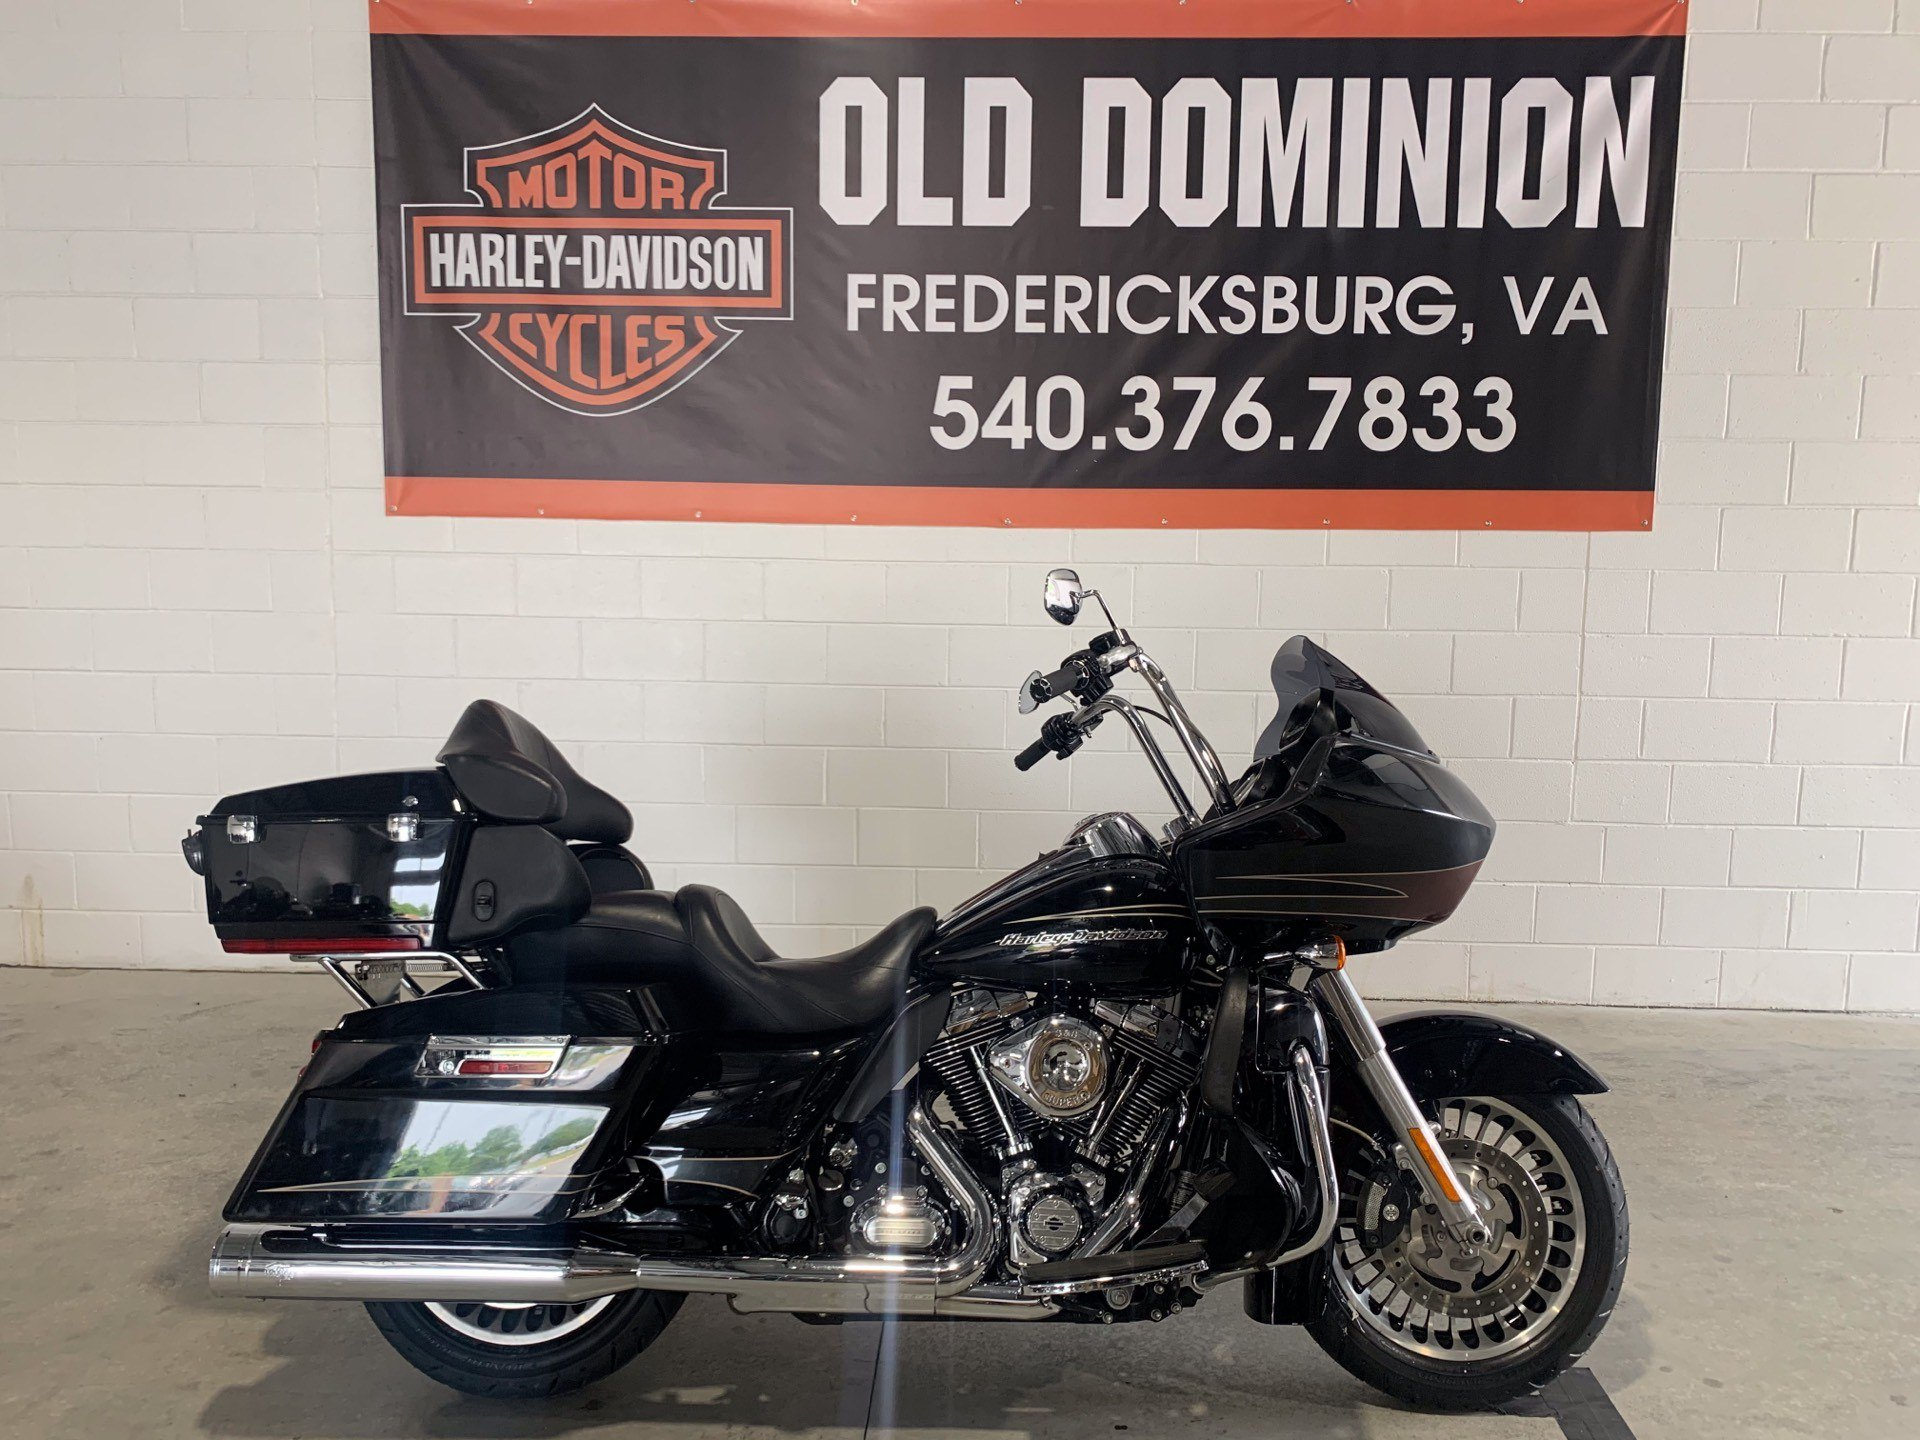 2012 Harley-Davidson Road Glide® Ultra in Fredericksburg, Virginia - Photo 1